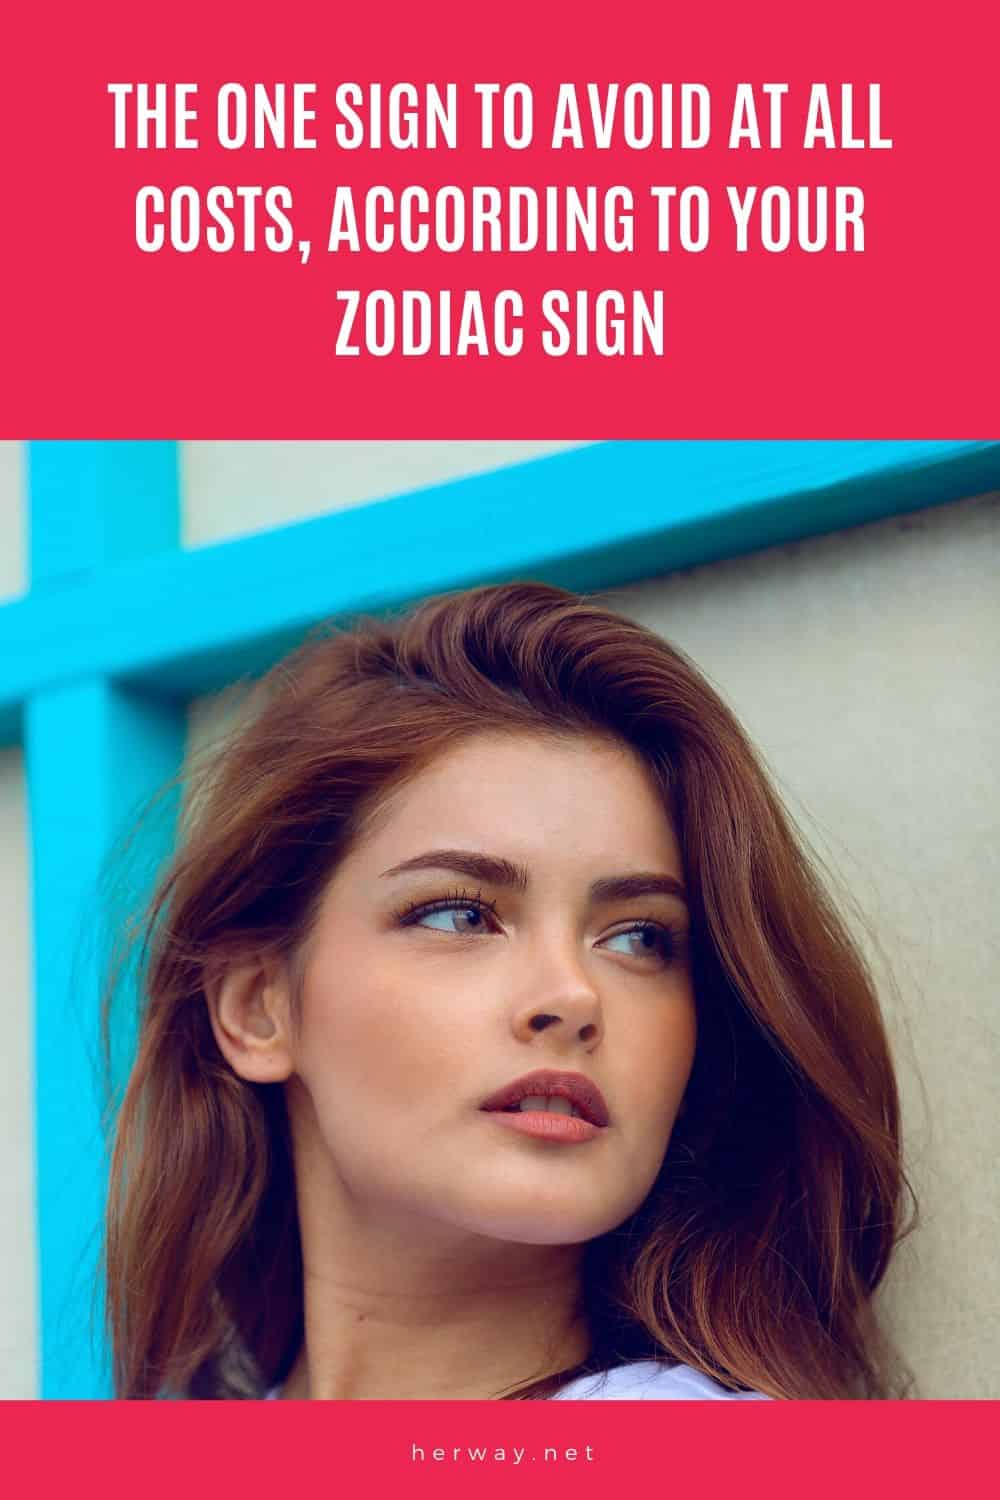 The One Sign To Avoid At All Costs, According To Your Zodiac Sign